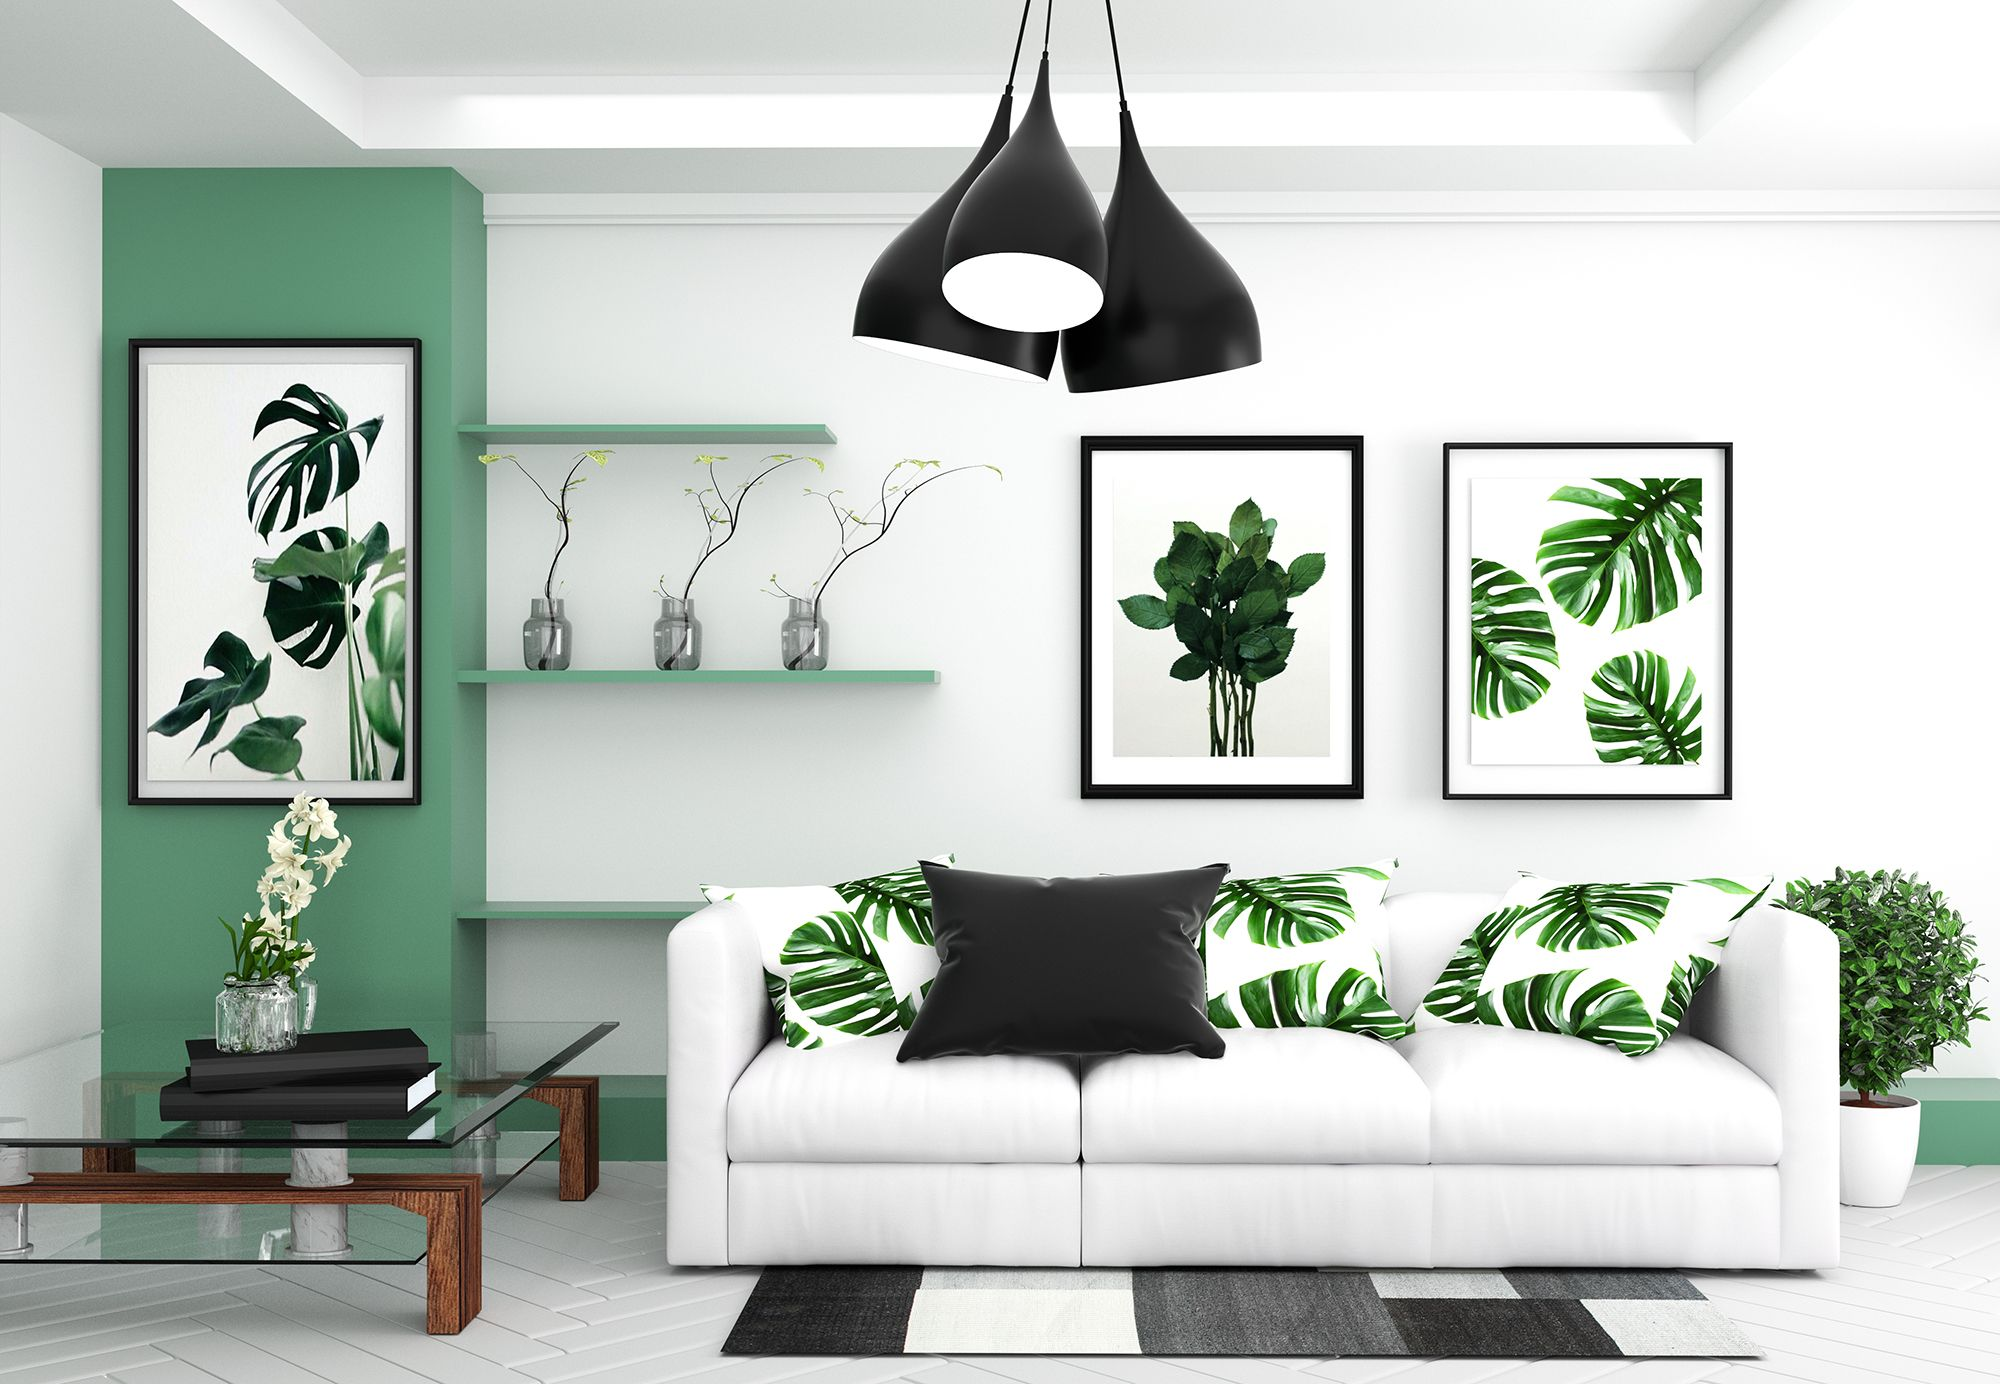 Living room interior - room modern tropical style with composition